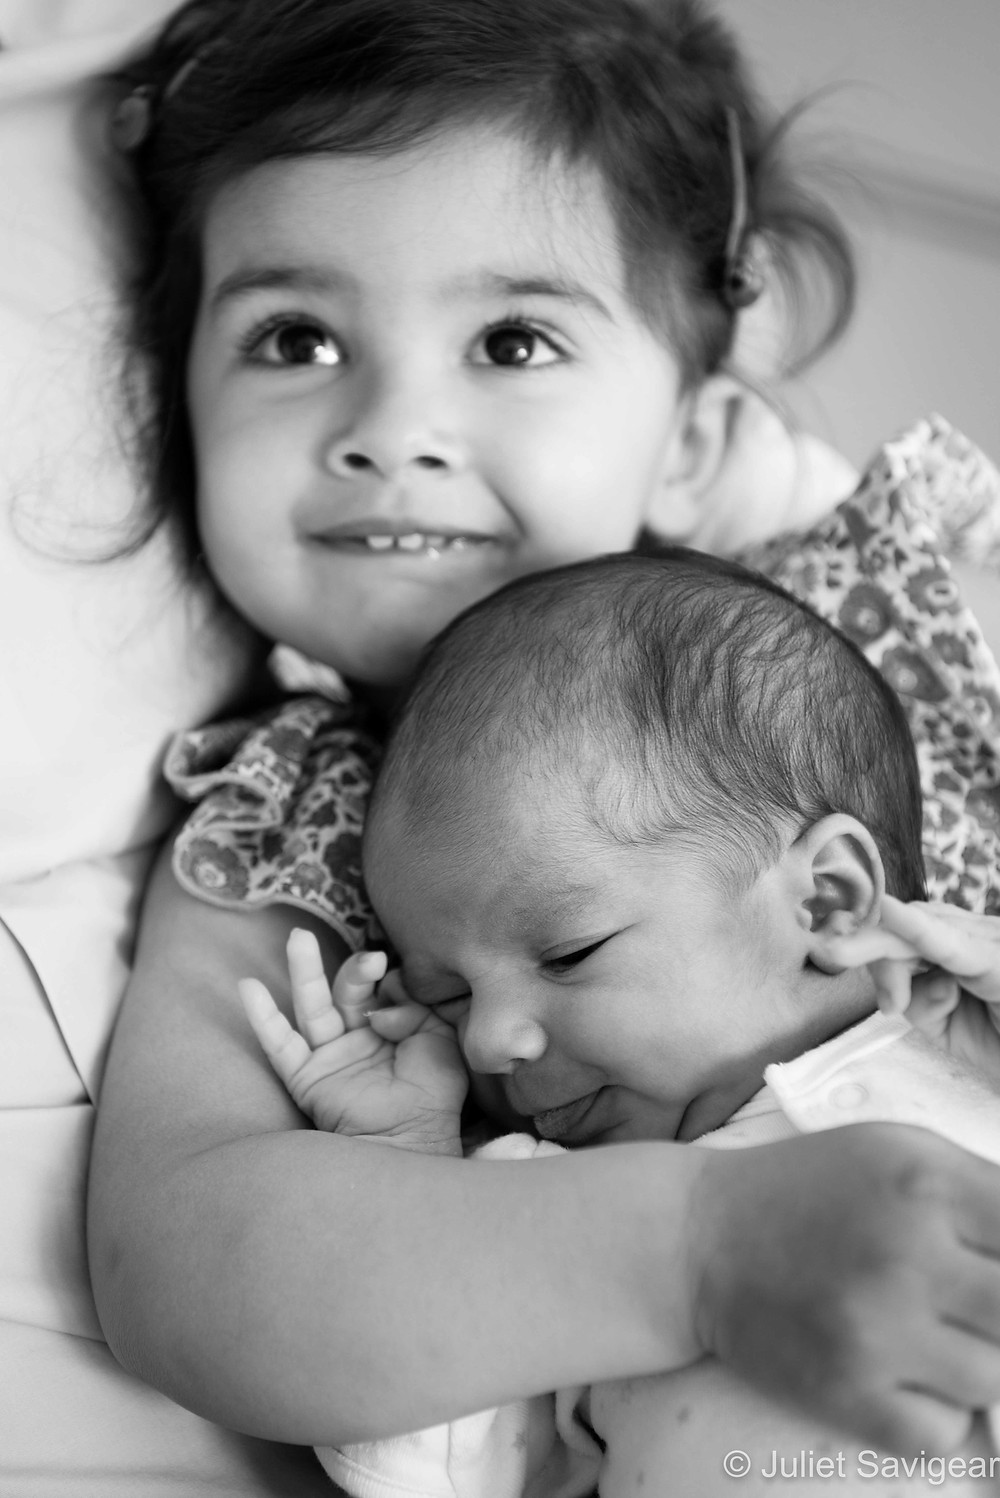 My Little Sister - Newborn Baby & Family Photography, Battersea